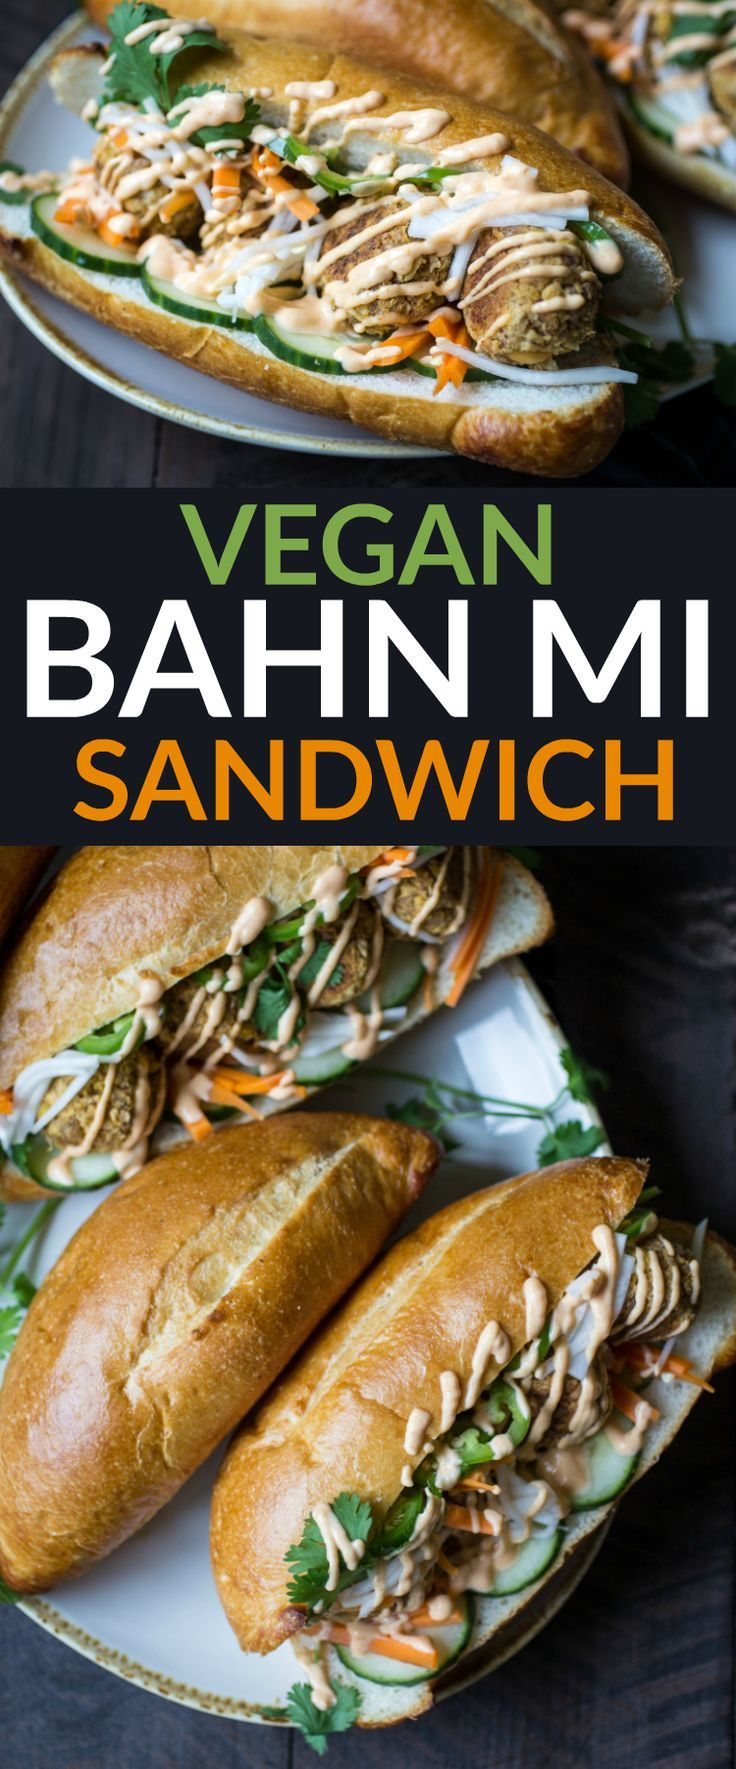 Vegan Meatball Bahn Mi Sandwiches ~ Chock full of pickled veggies and fresh cilantro sprigs, then topped with a creamy sriracha sauce!